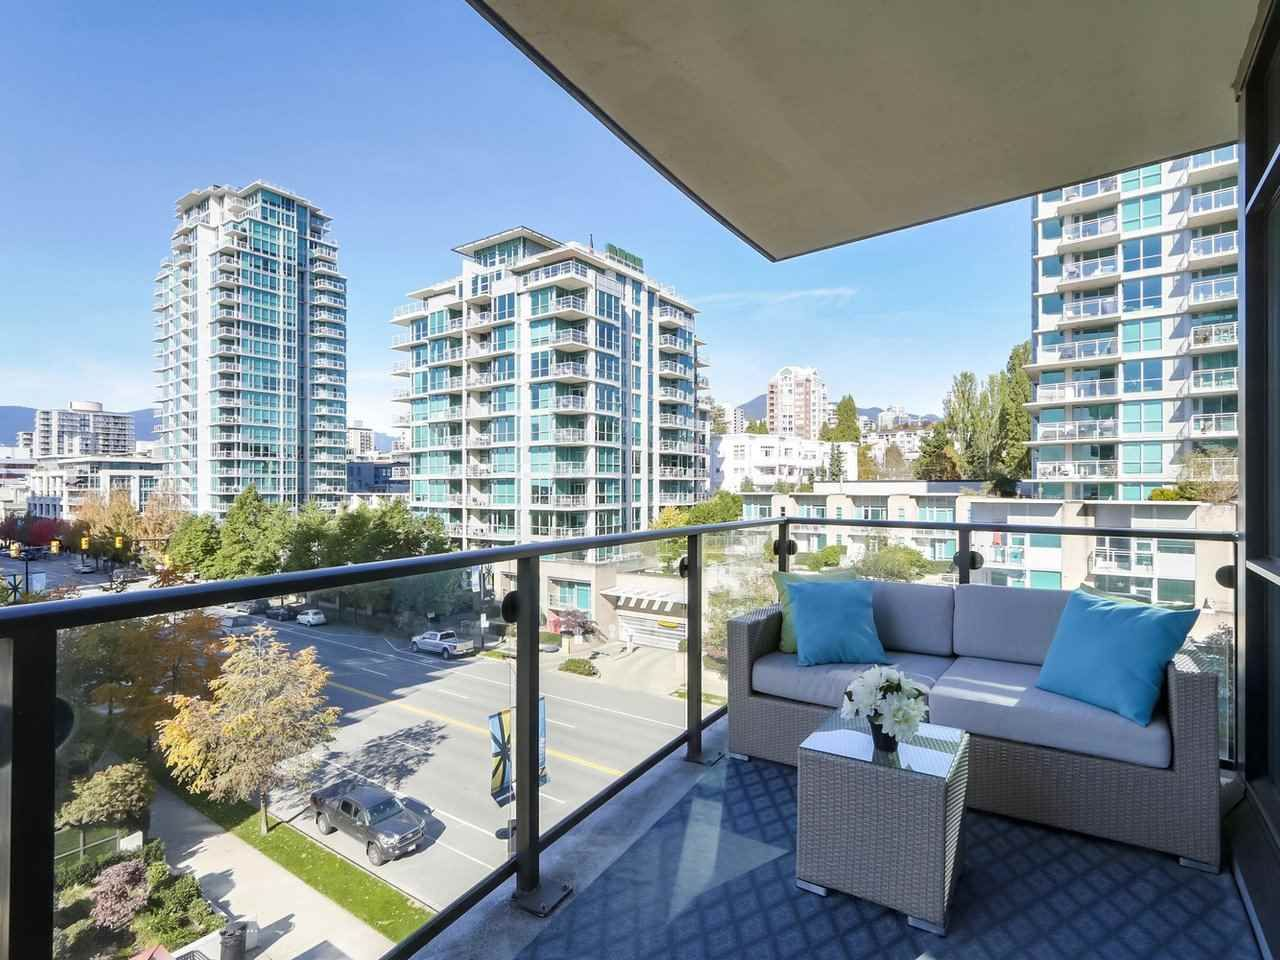 """Photo 16: Photos: 608 172 VICTORY SHIP Way in North Vancouver: Lower Lonsdale Condo for sale in """"Atrium at the Pier"""" : MLS®# R2454404"""